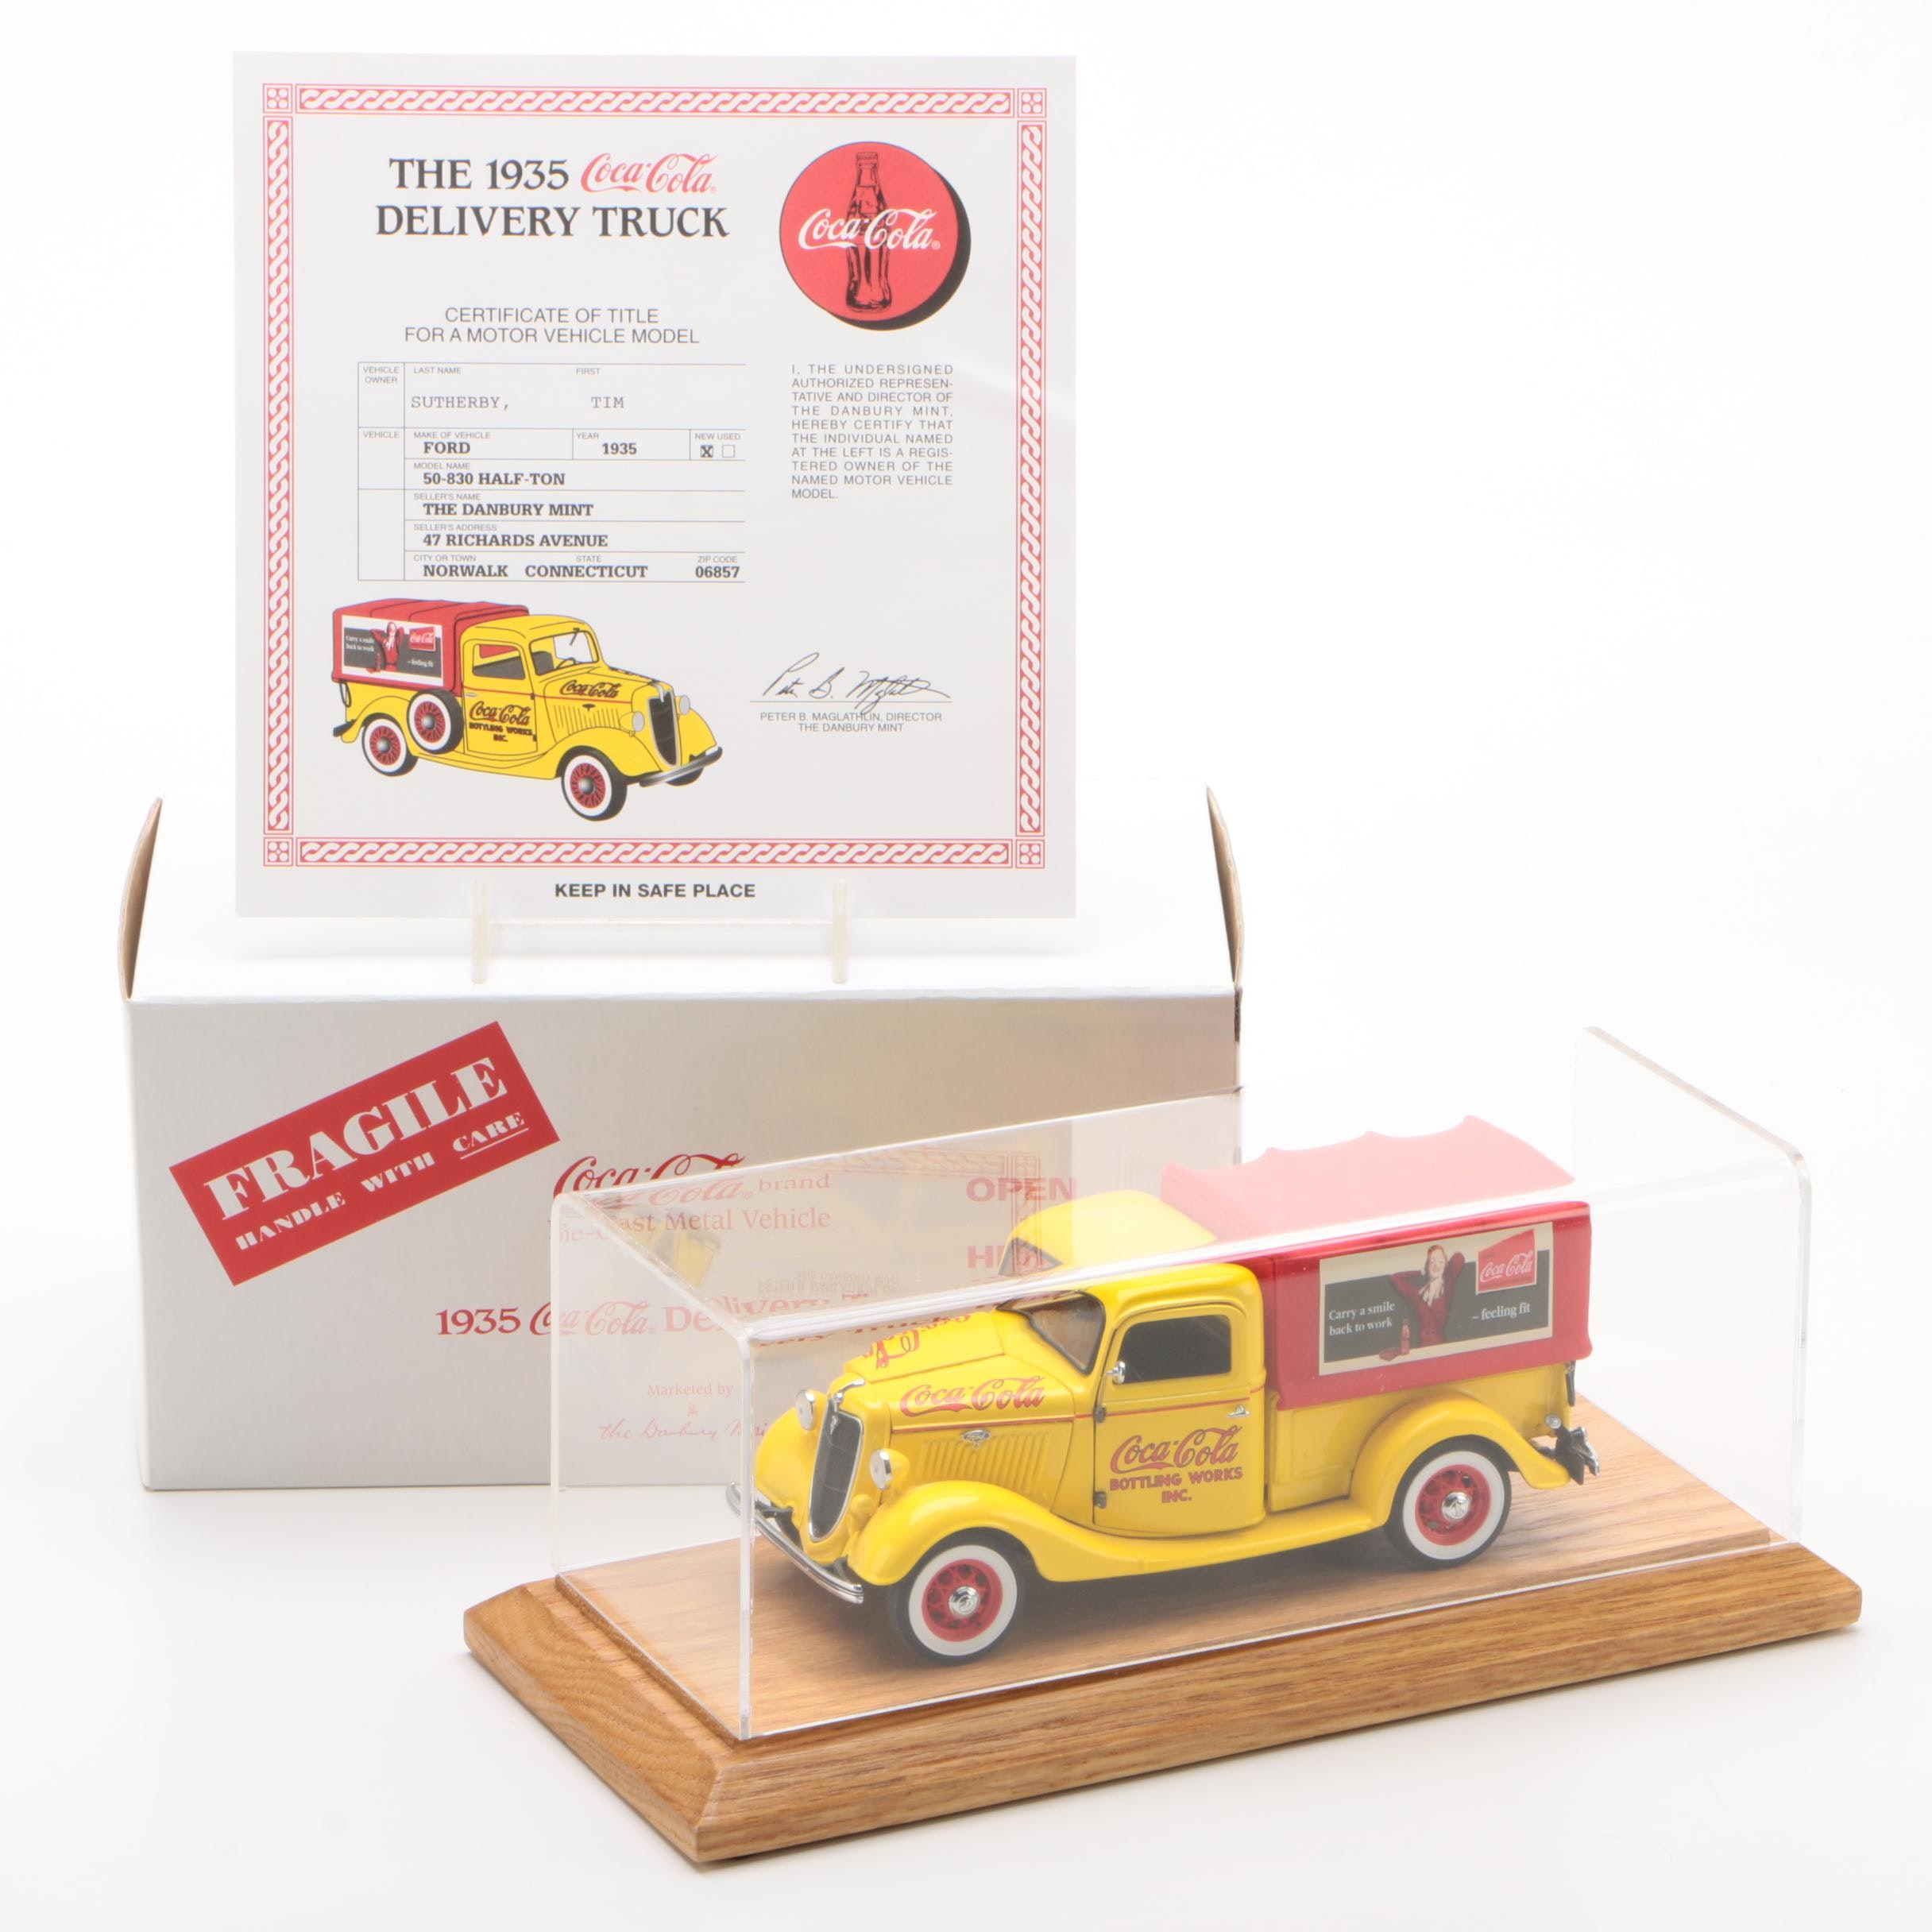 Danbury Mint Die-Cast 1935 Coca-Cola Delivery Truck with Display Case